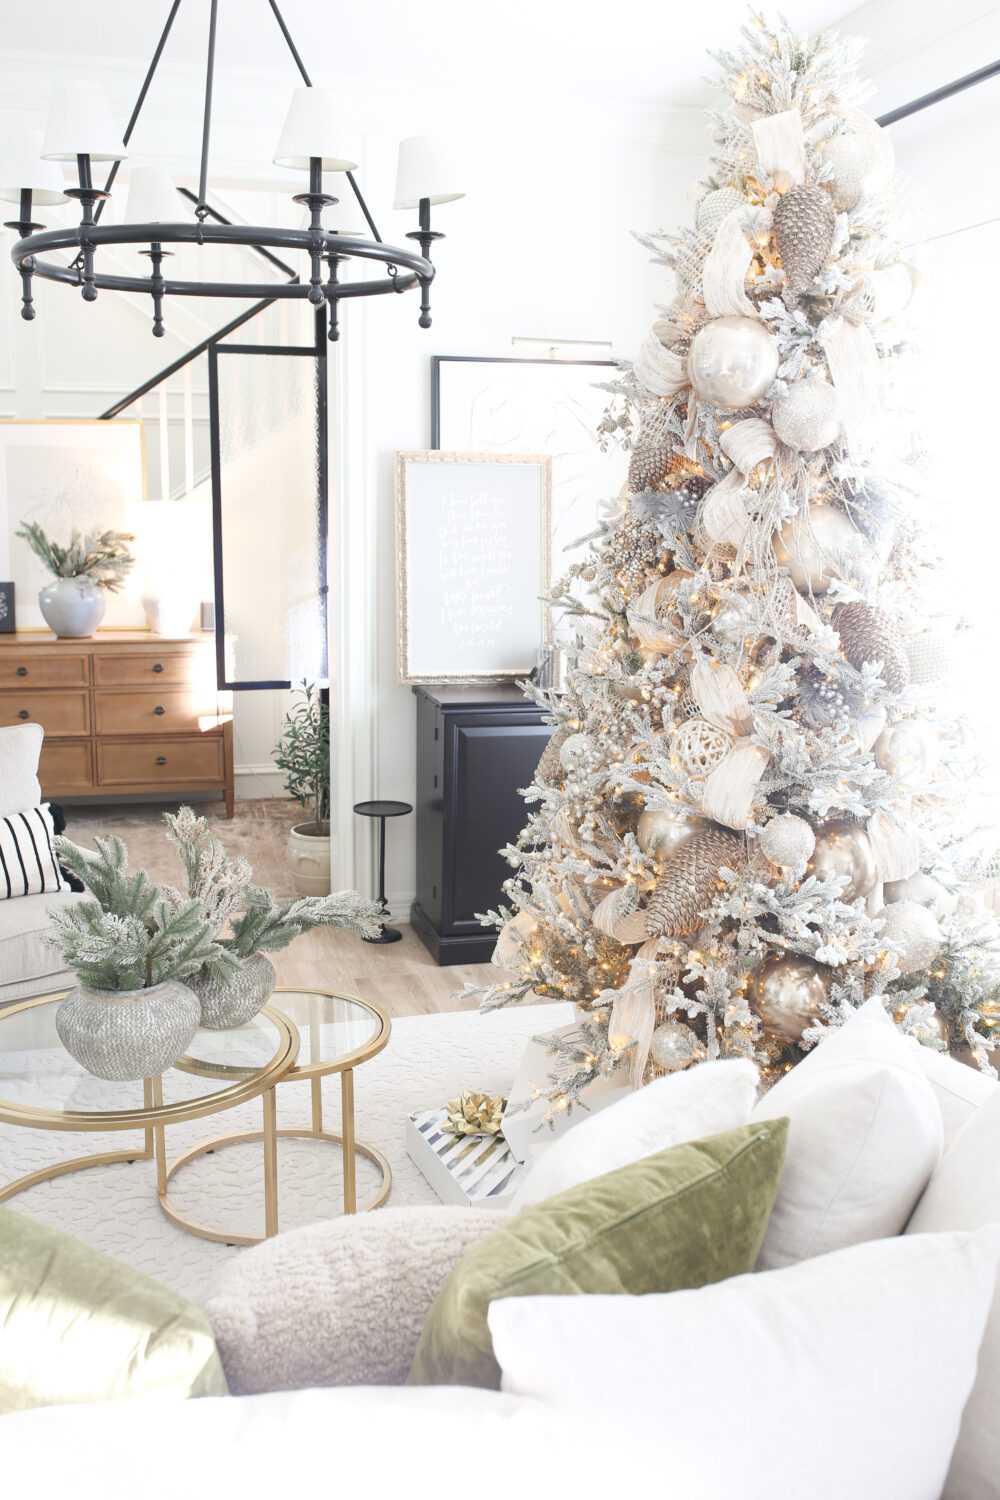 How to Decorate an Elegant Designer Christmas Tree Like a Pro